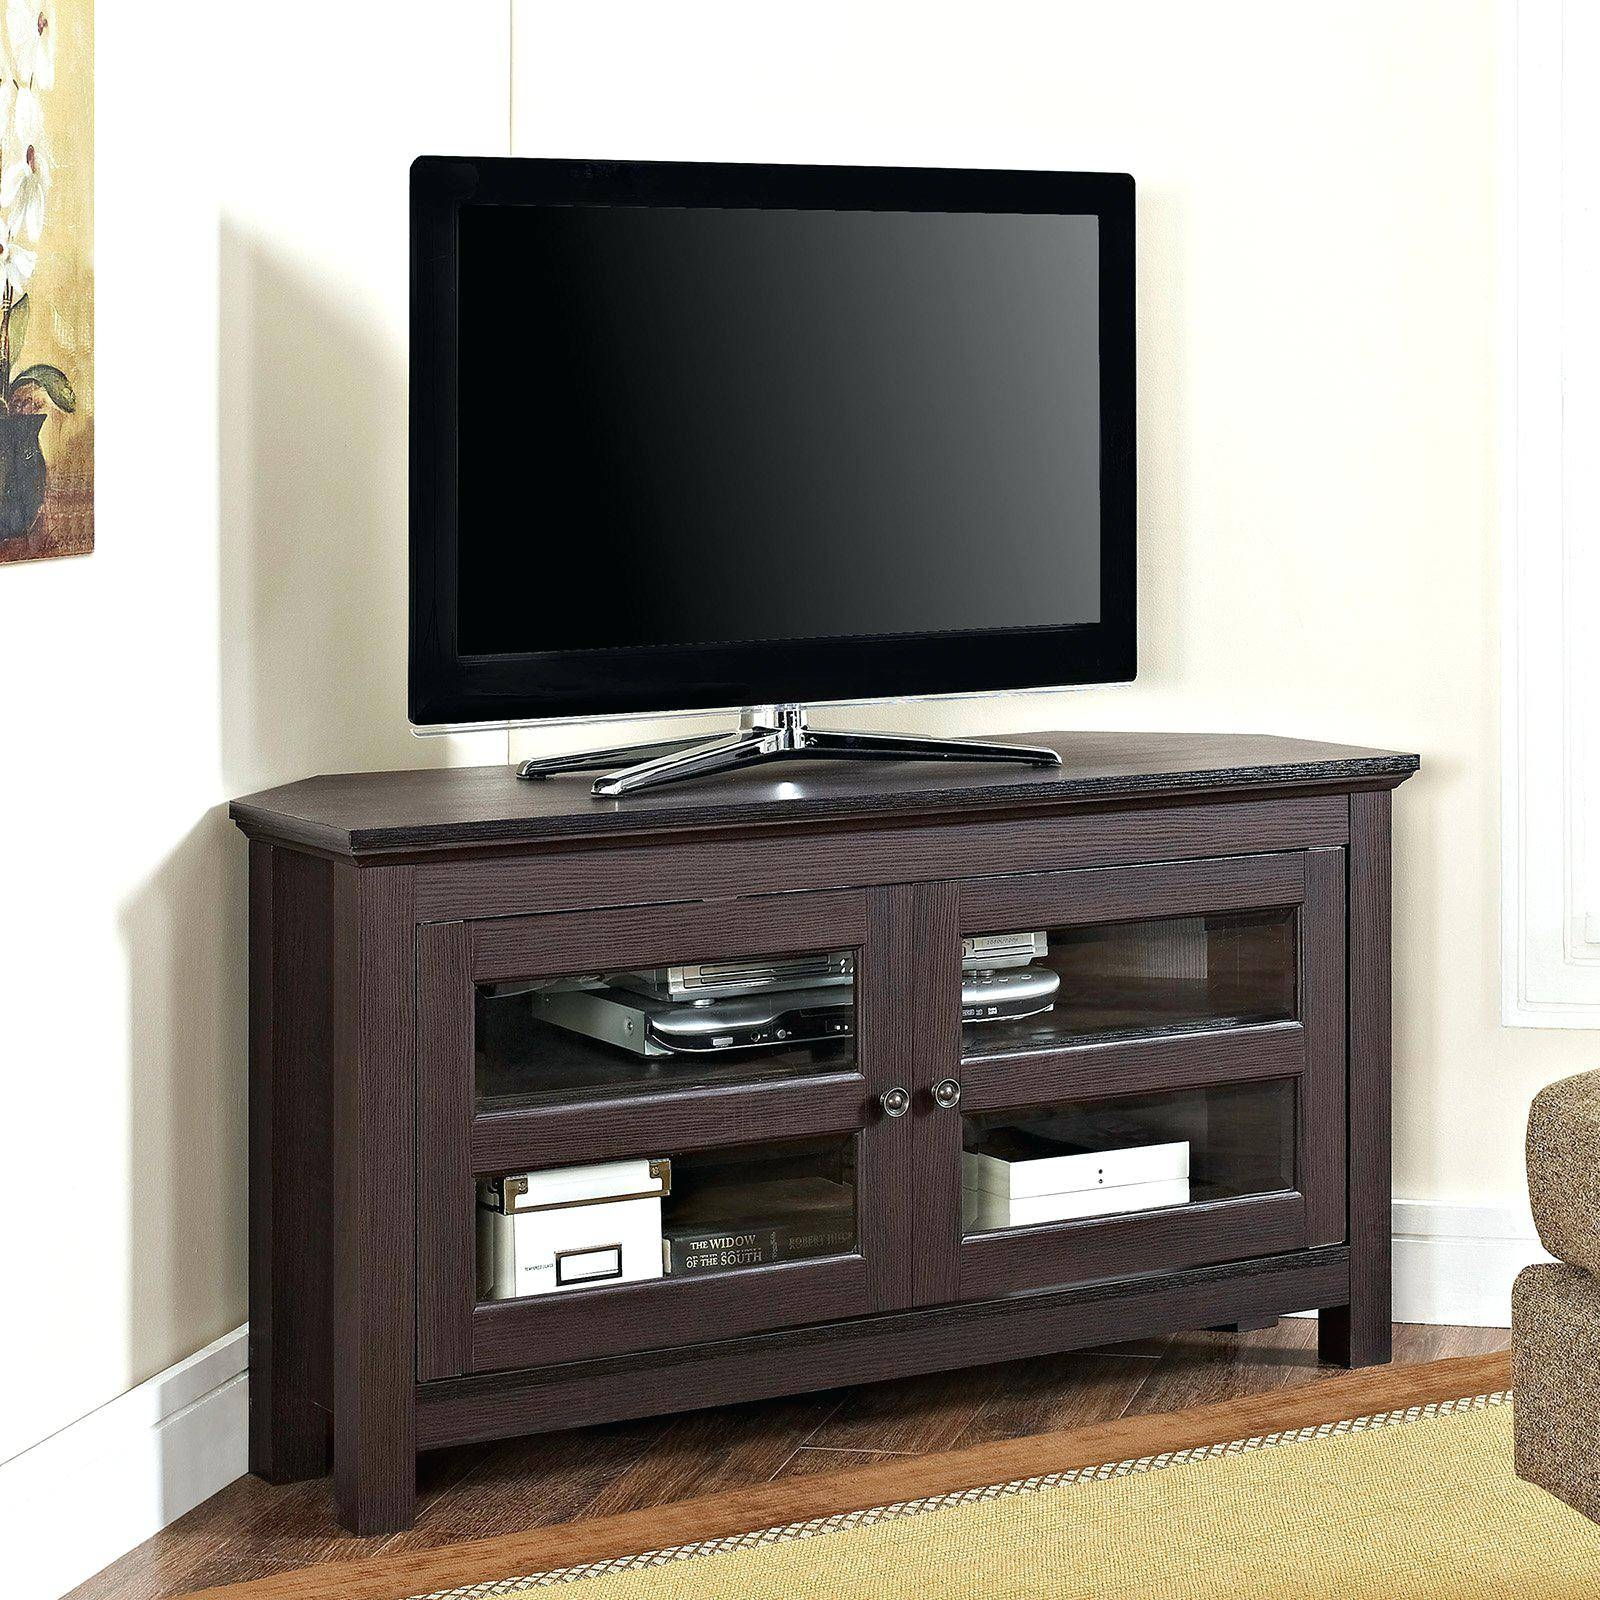 Tv Stand : Cool Rustic Oak Corner Tv Stand With Drawer Corner Oak intended for Corner Tv Stands With Drawers (Image 13 of 15)